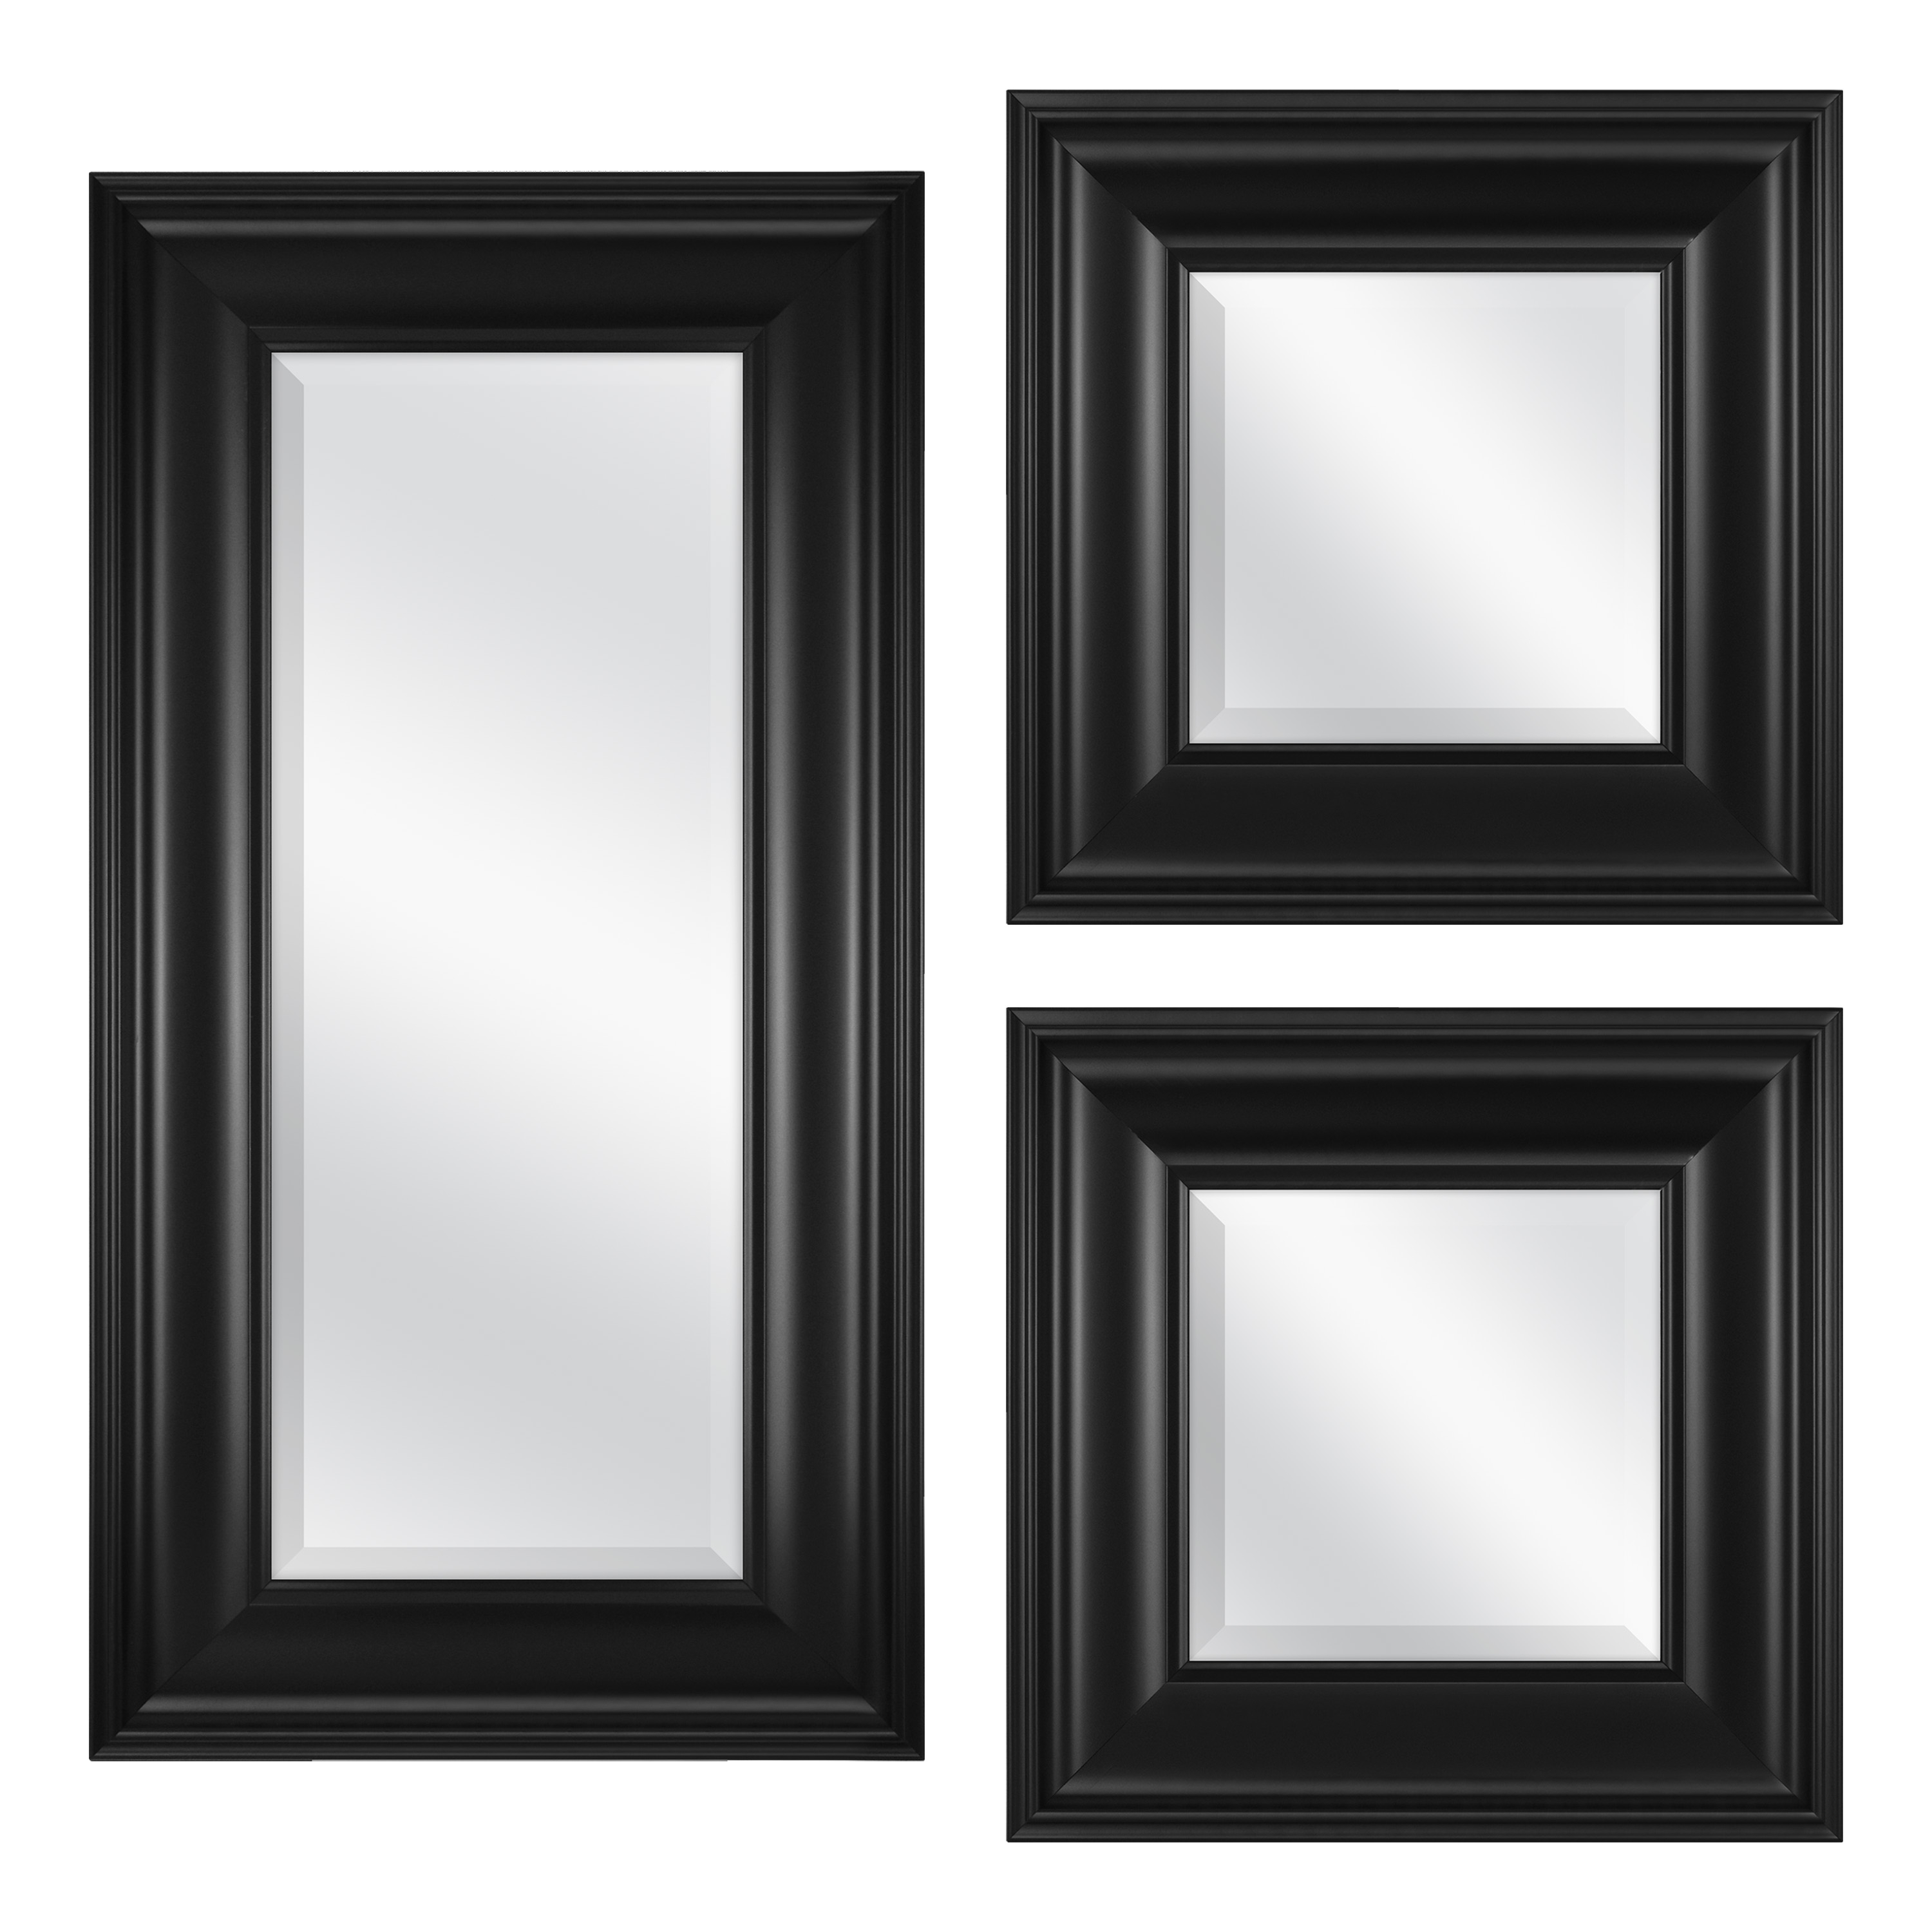 """3 Piece Black Accent Mirror Set, (2) 8"""" X 8"""" Mirrors And (1) 8"""" X 20""""  Mirror, Black Finish Within Glam Beveled Accent Mirrors (Photo 15 of 20)"""